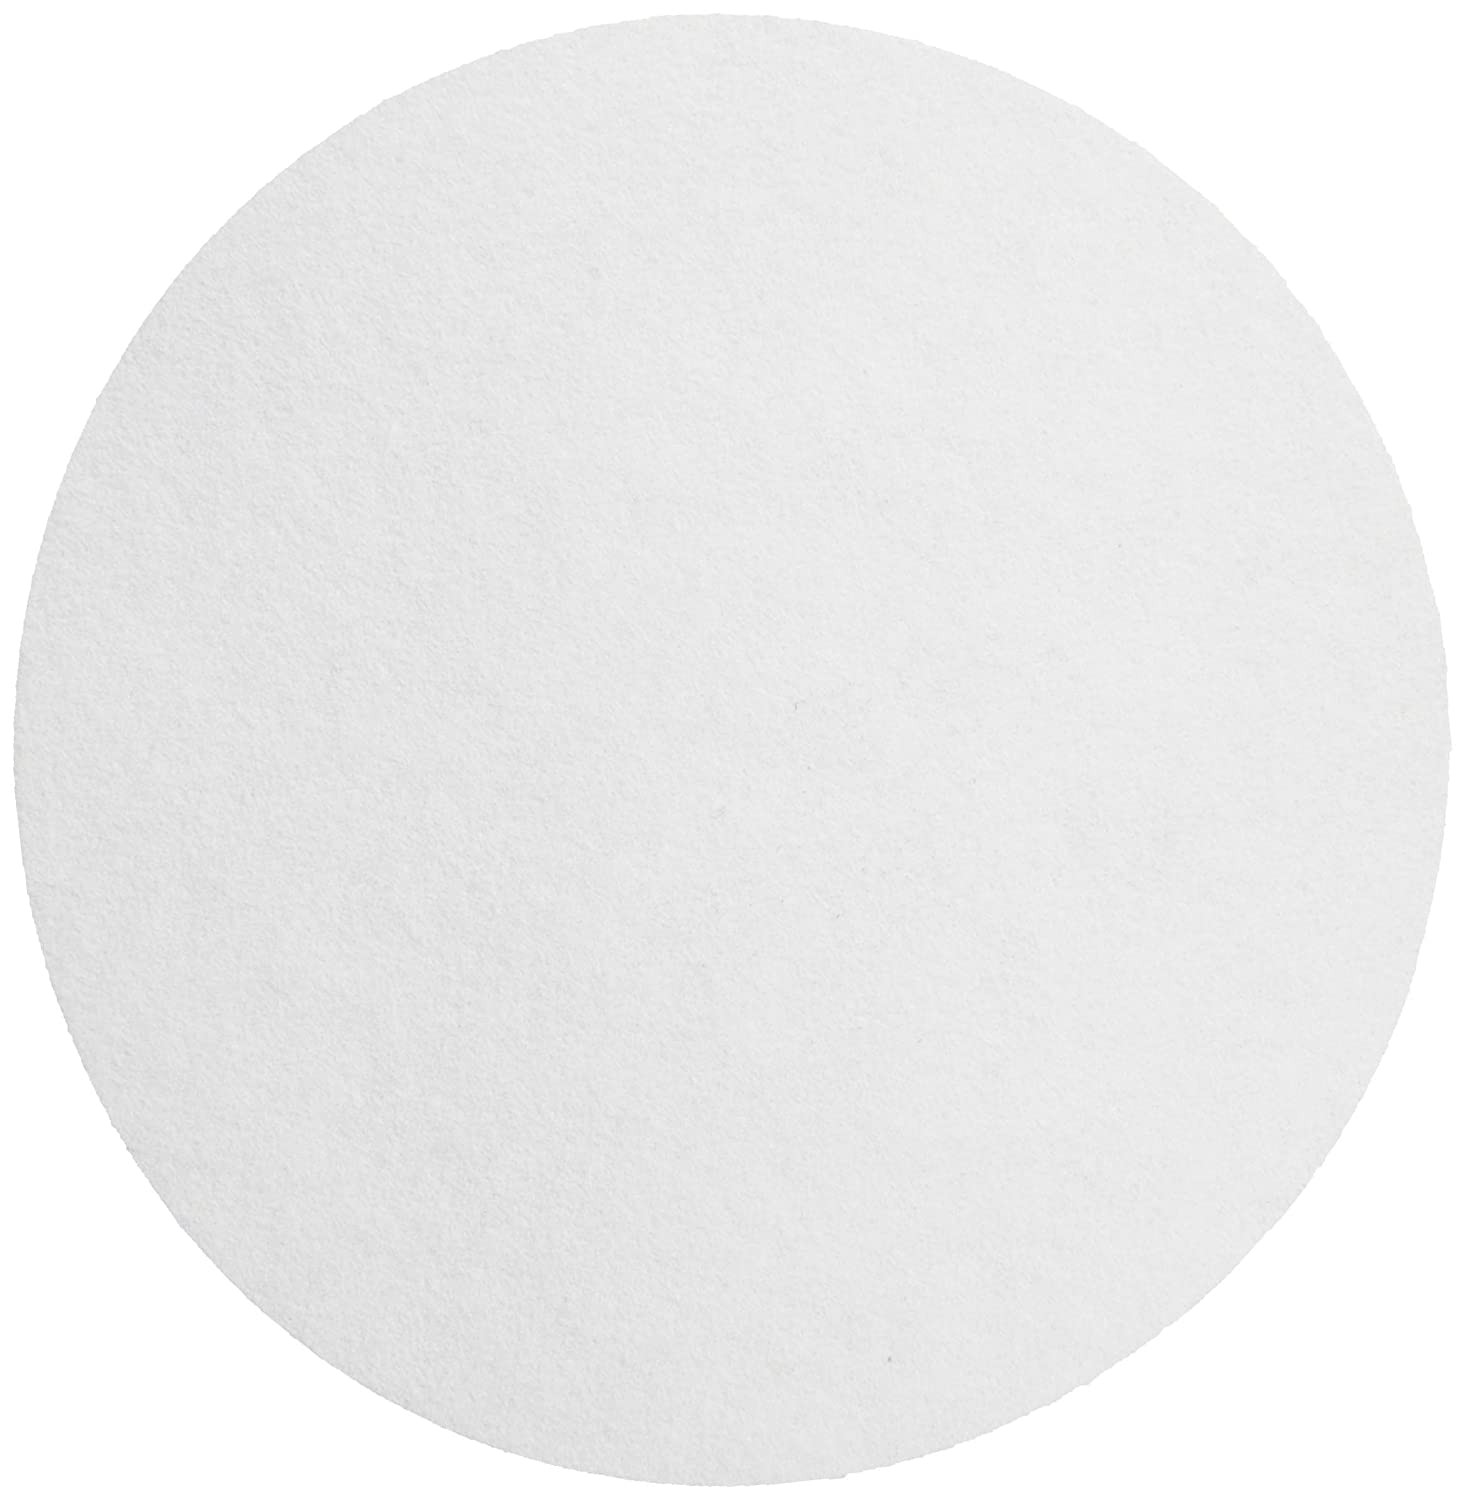 Whatman 1441090 Grade 41 Quantitative Filter Paper, Ash less, 0.007%, circle, 90 mm (Pack of 100) GE Healthcare F1240-4